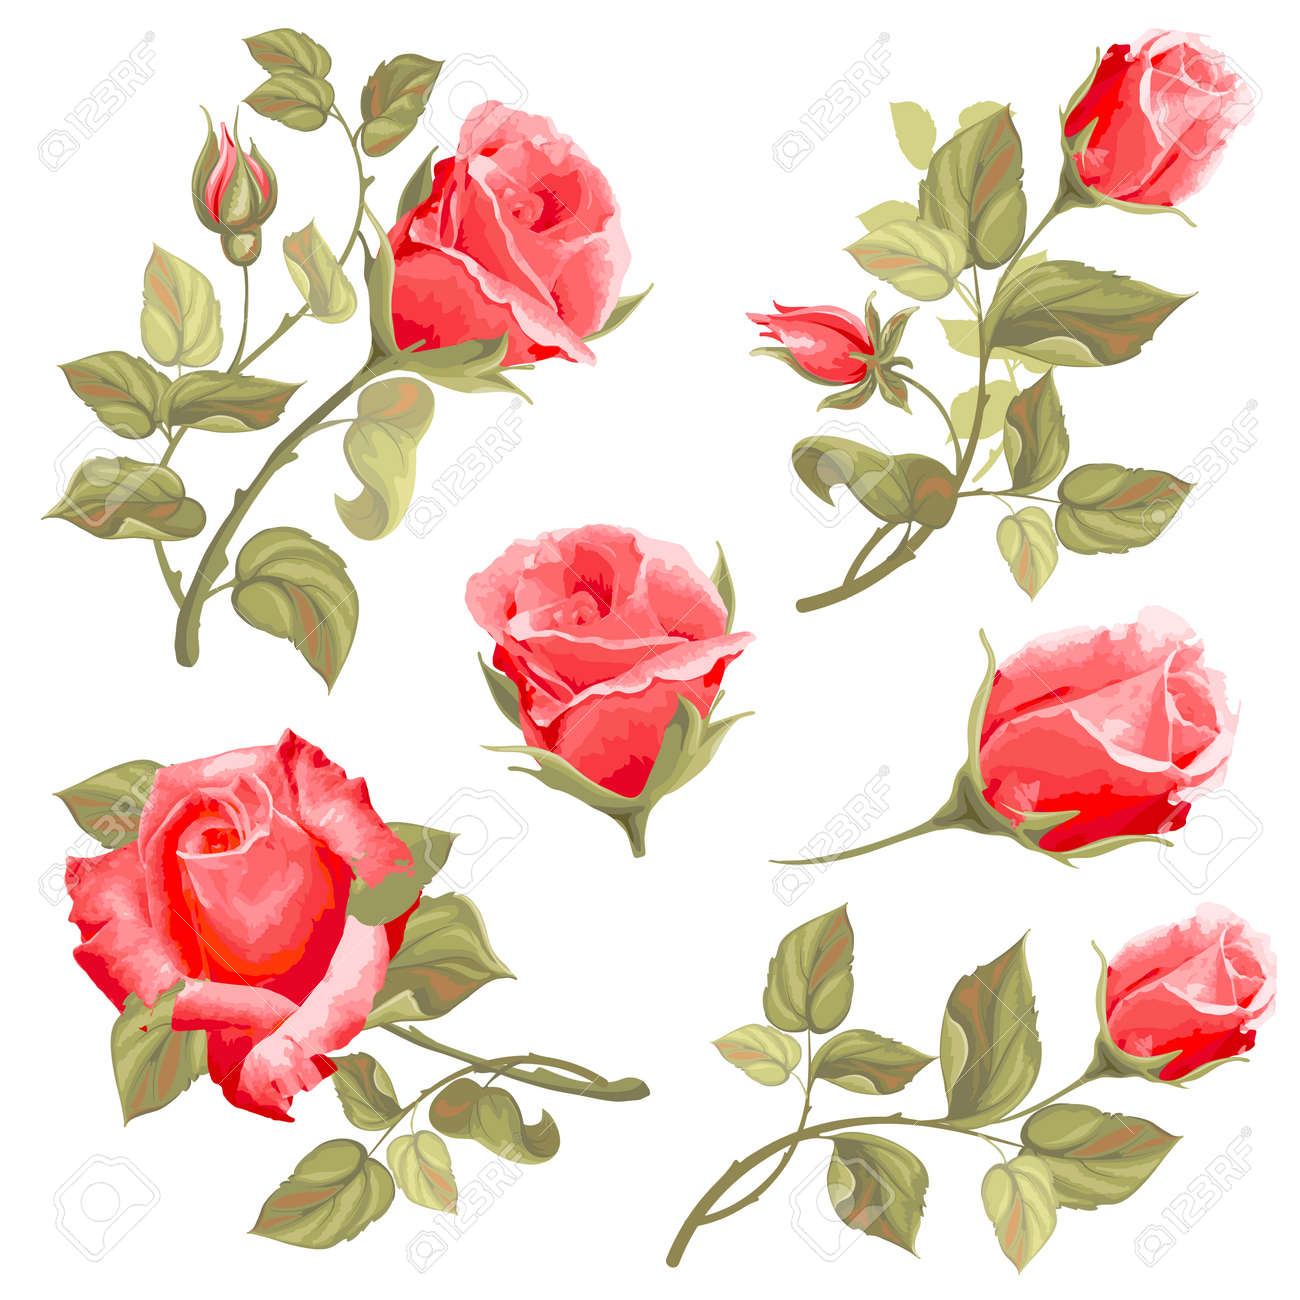 Vector Vintage Rose Illustration Graphic Element Collection Isolated